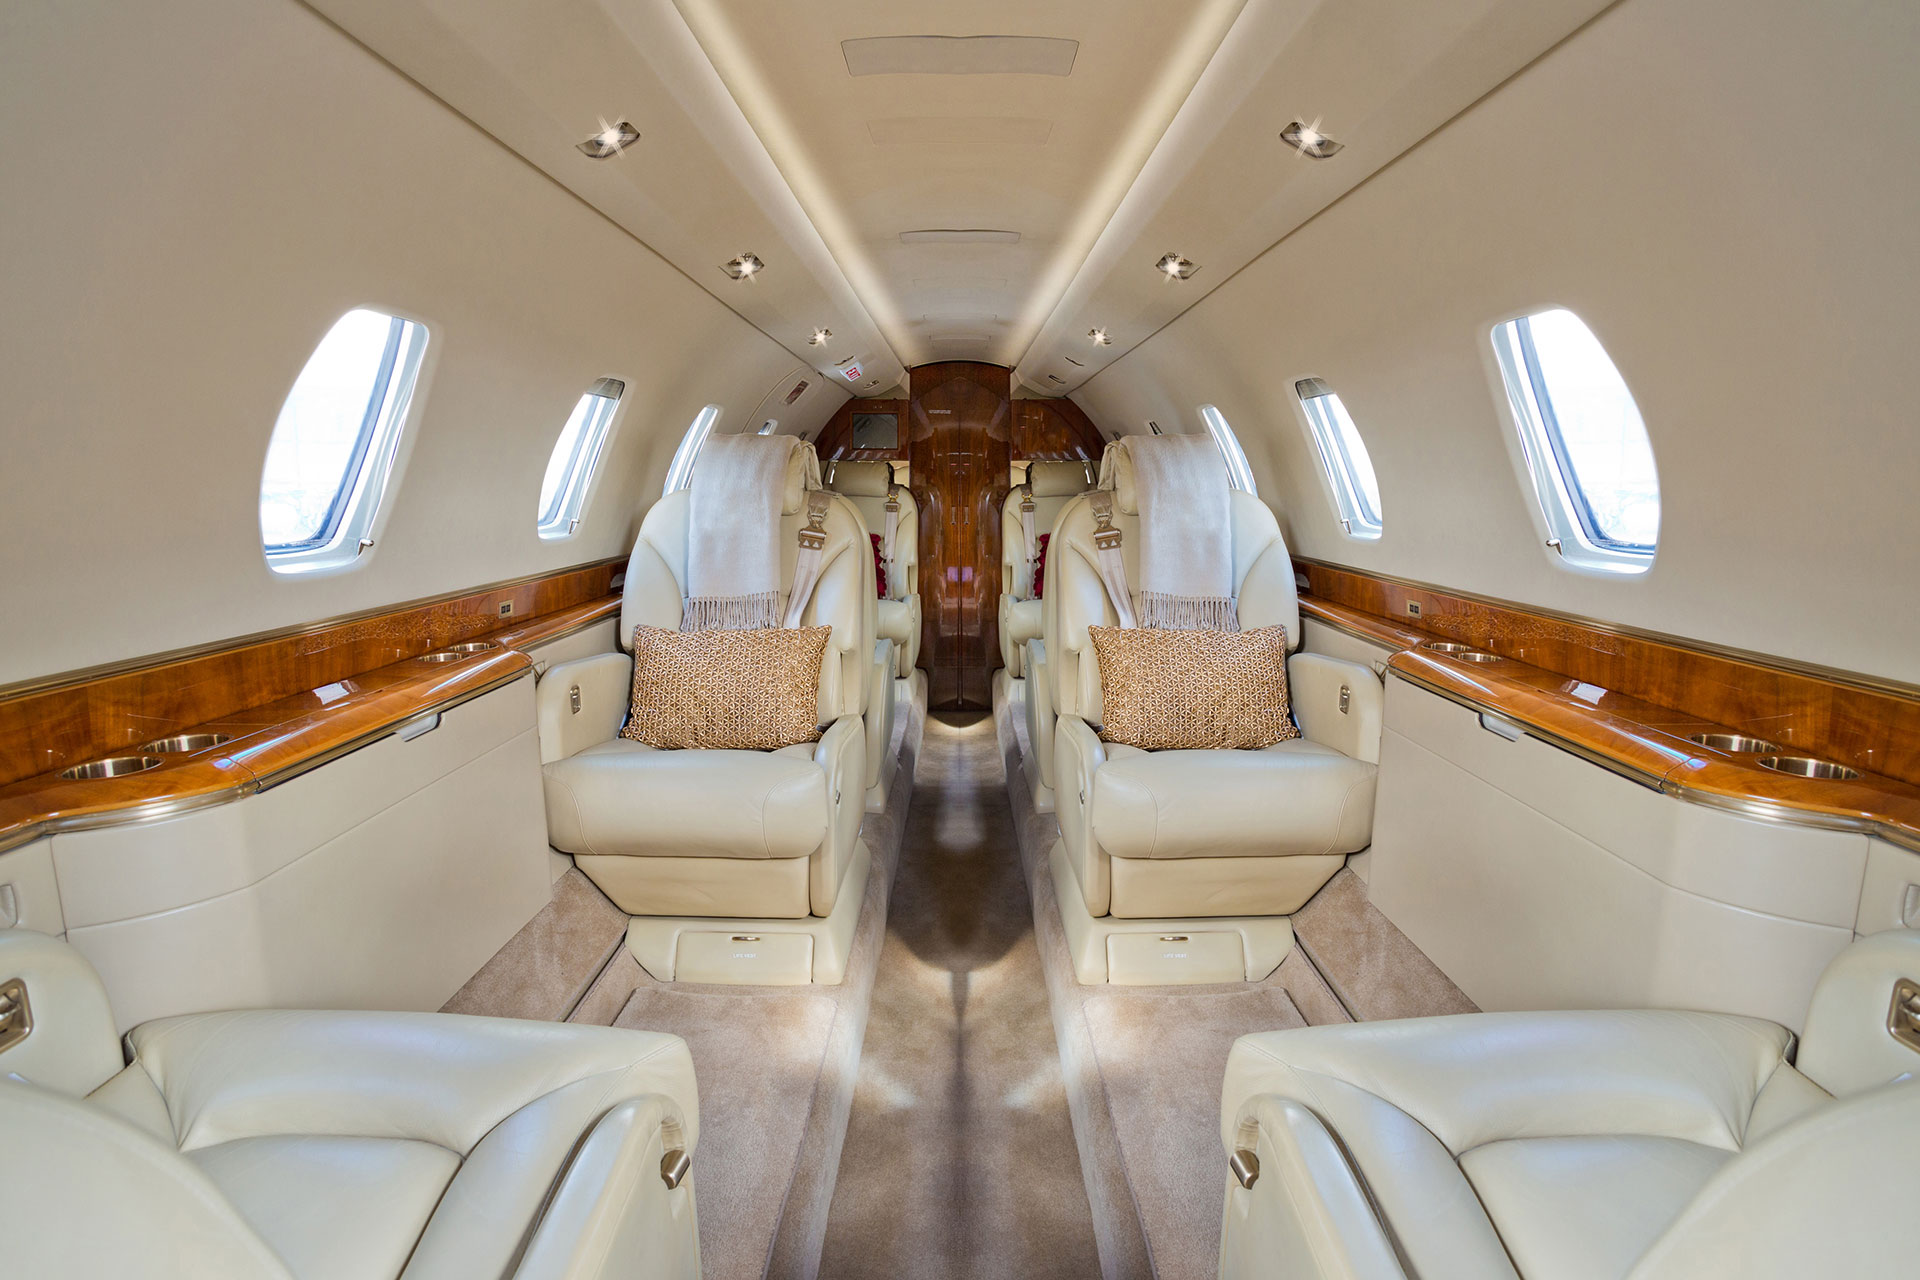 Private Plane; Courtesy of Carlos Yudica/Shutterstock.com